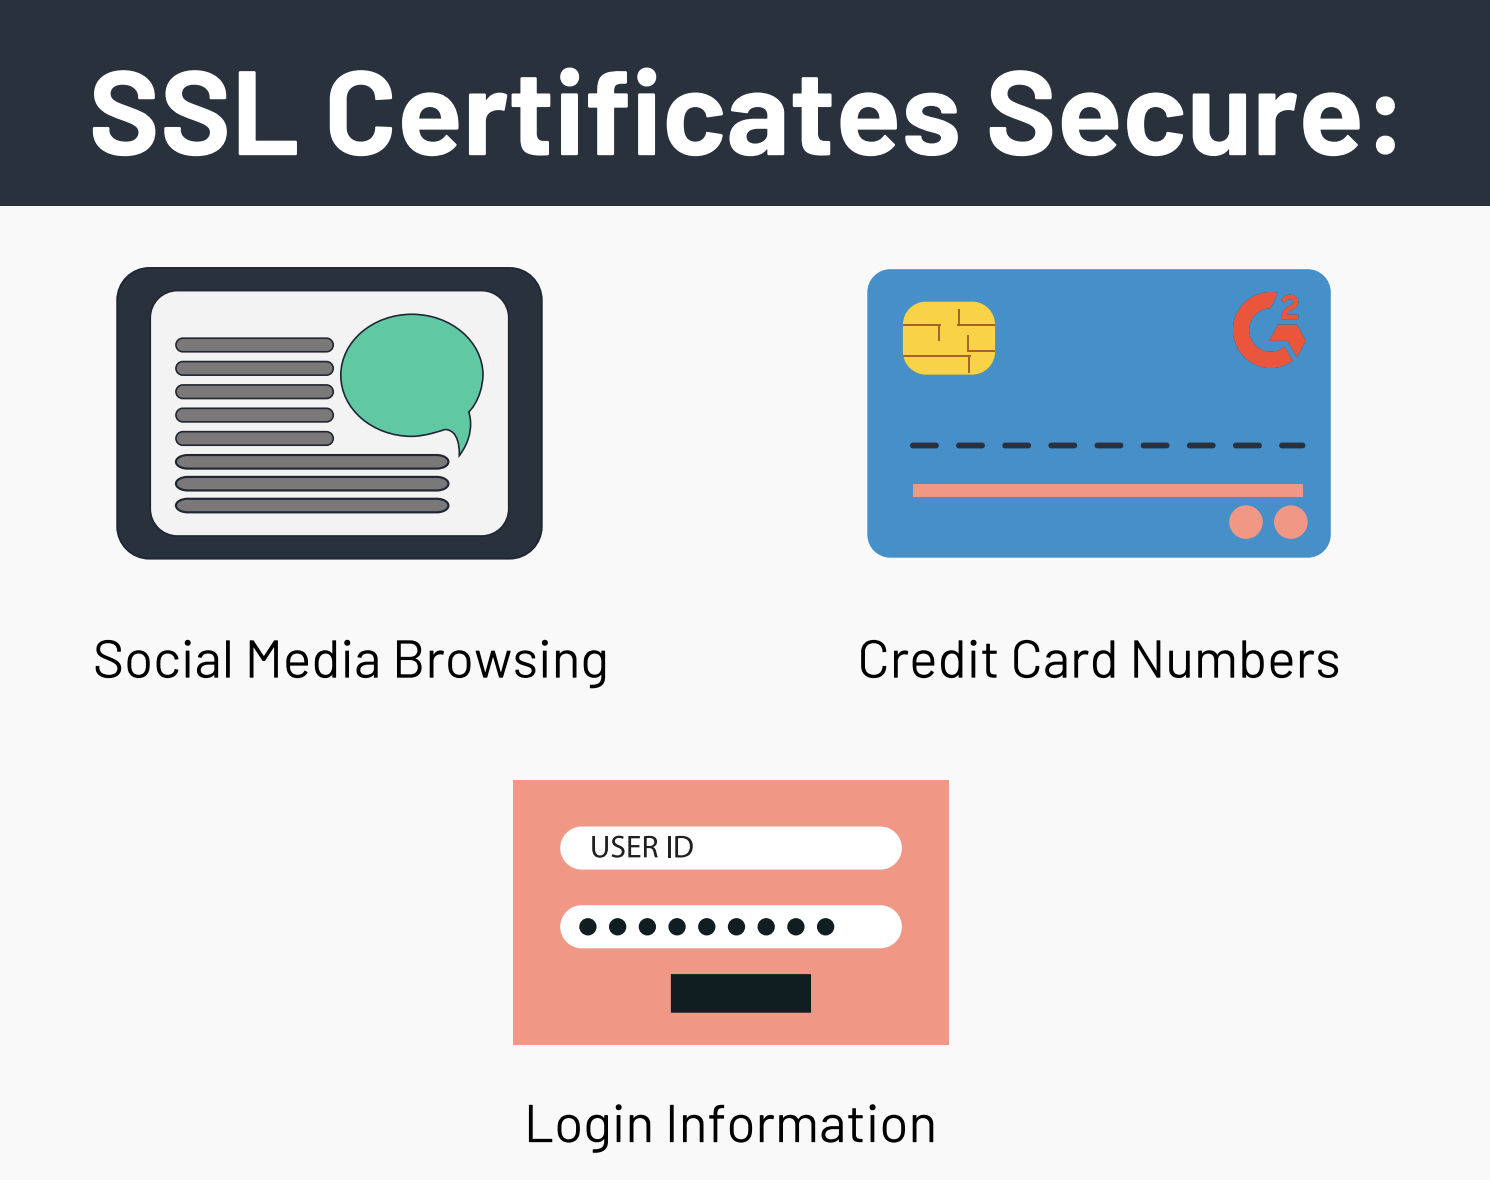 What is Secure with an SSL Certificate